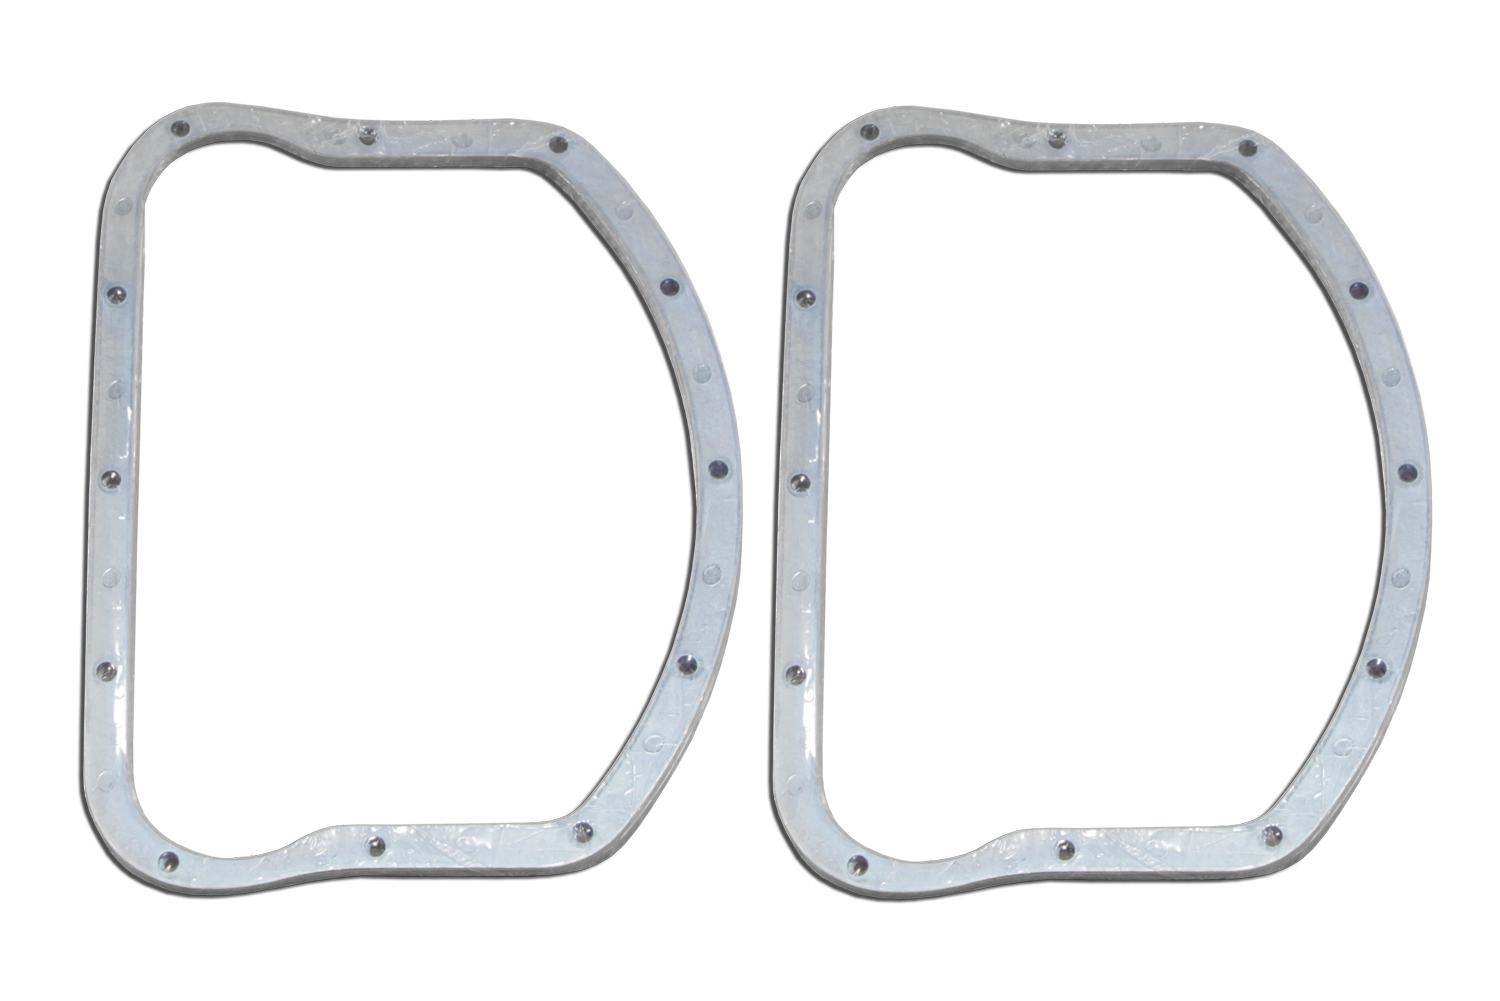 Panhead D-Ring Set Zinc